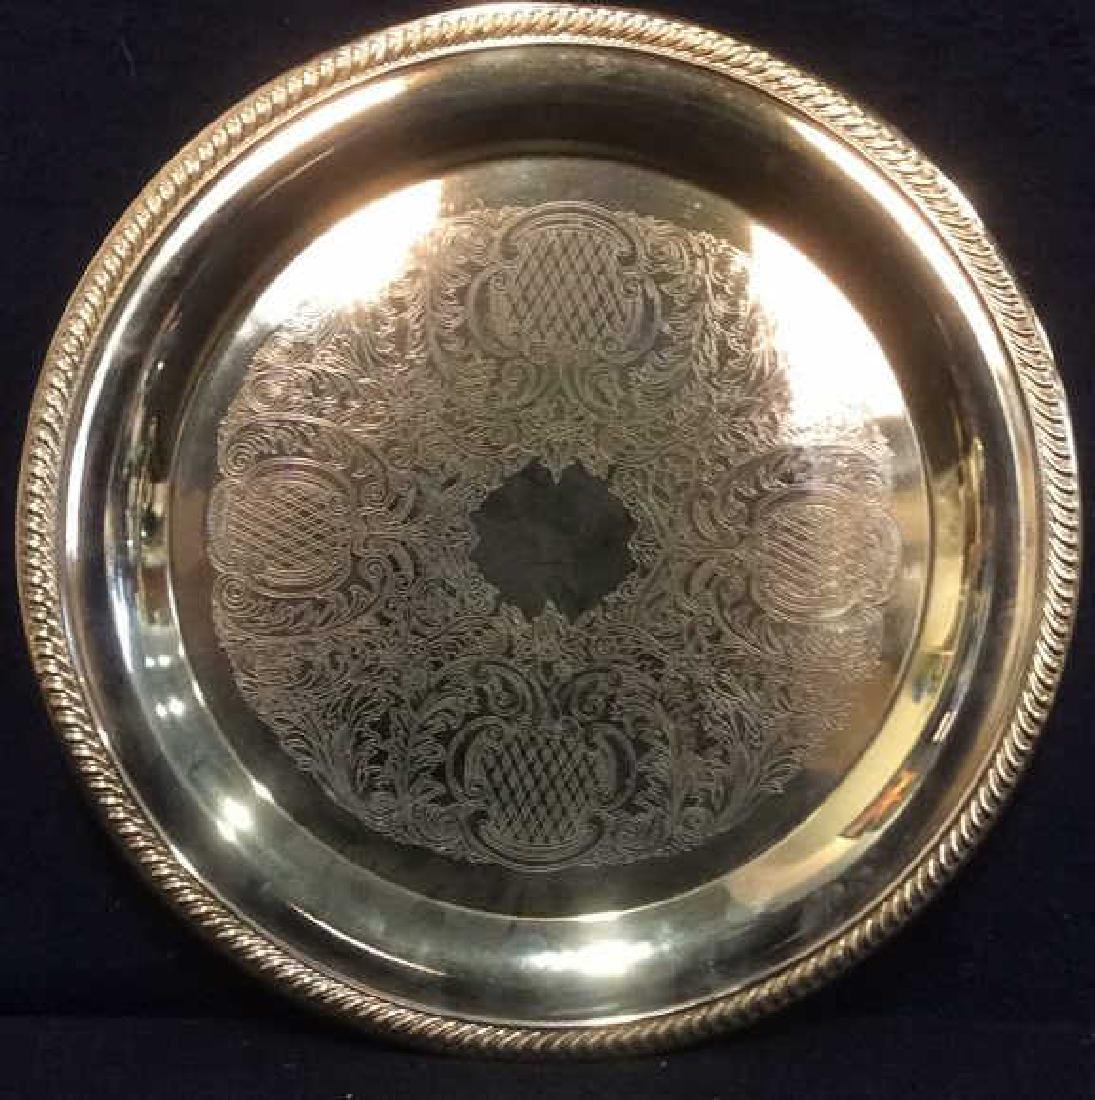 INTERNATIONAL SILVER CO Gold Toned Plated Platter